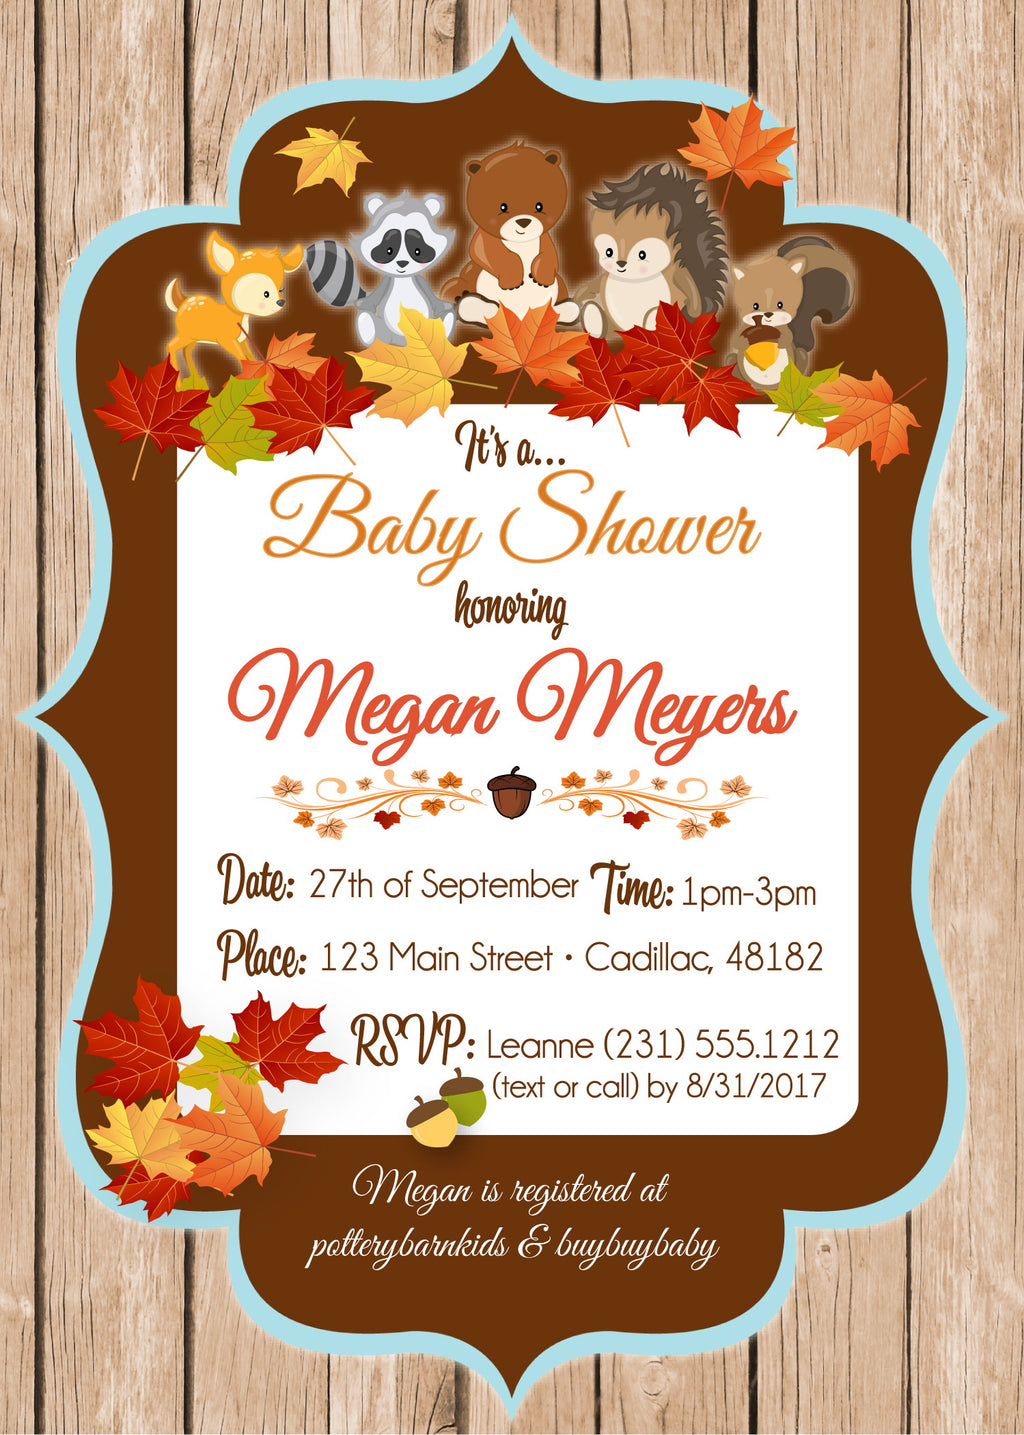 Baby shower invitations stork baby gift baskets woodland friends fall invite filmwisefo Gallery